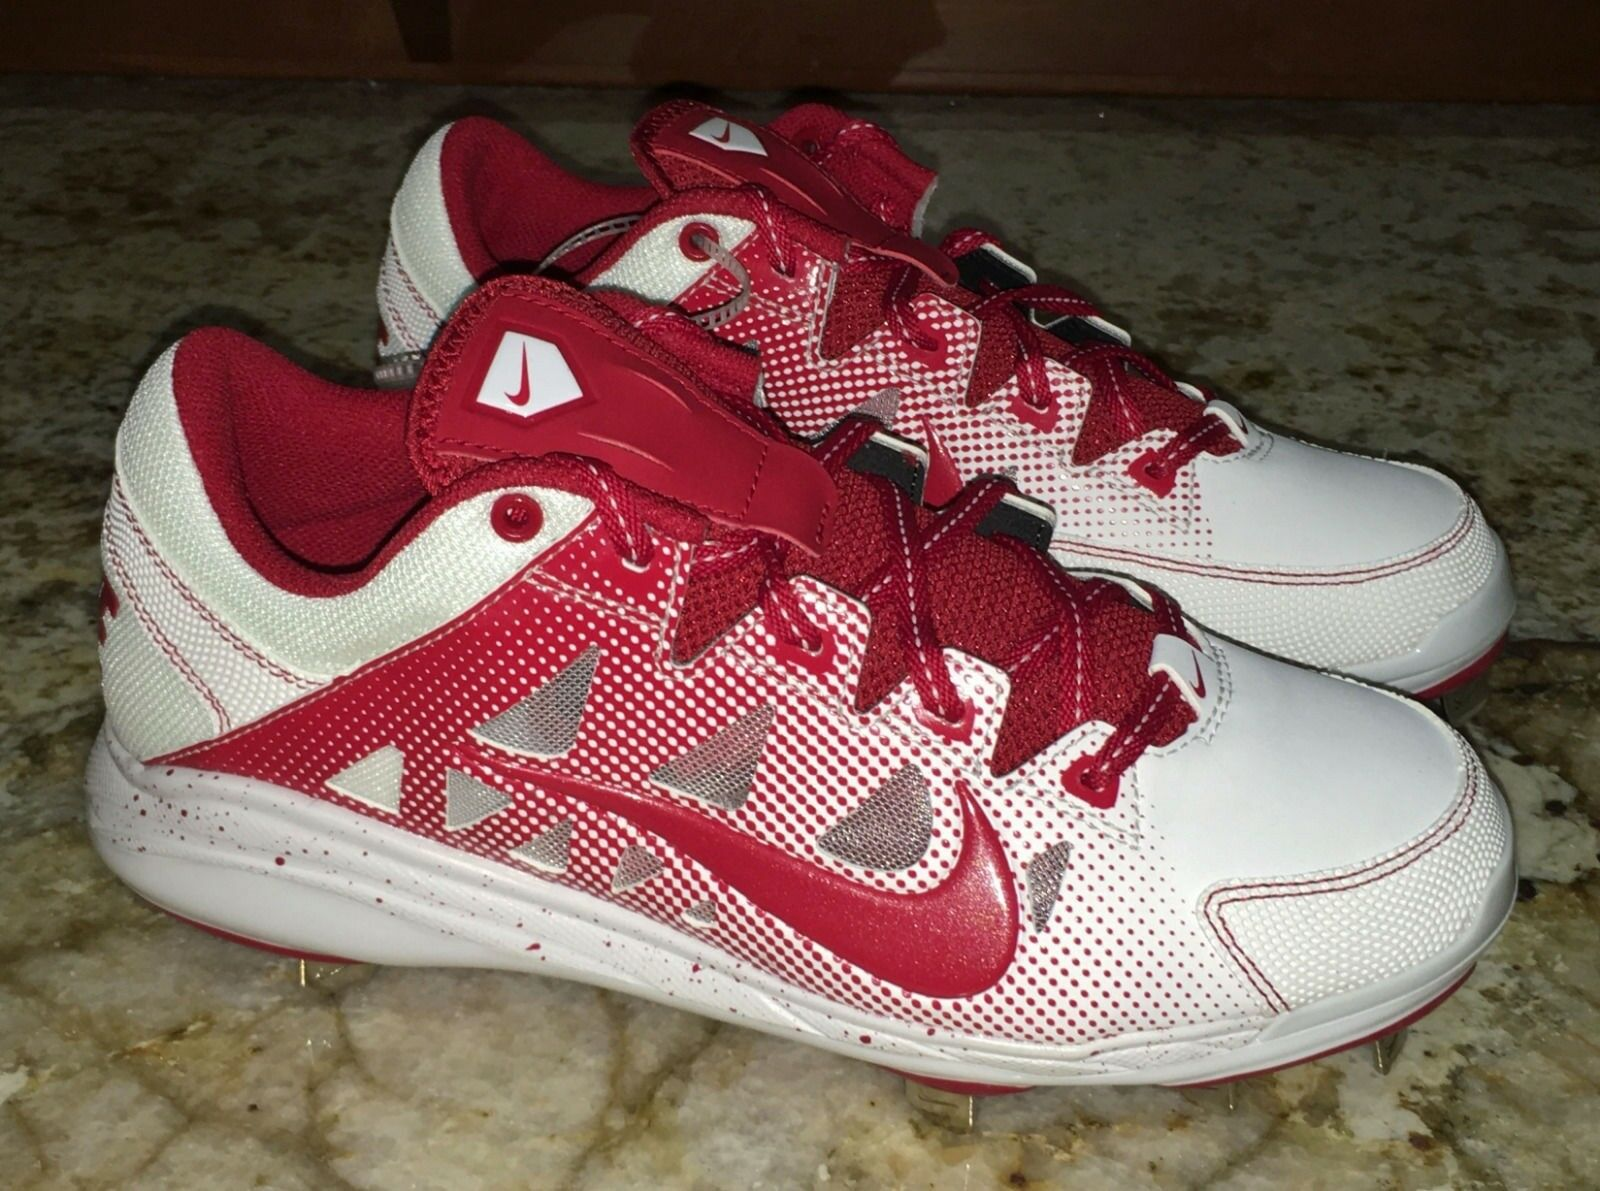 NIKE Air HyperDiamond Pro Metal Spikes Red White Softball Cleats NEW Womens 7 10